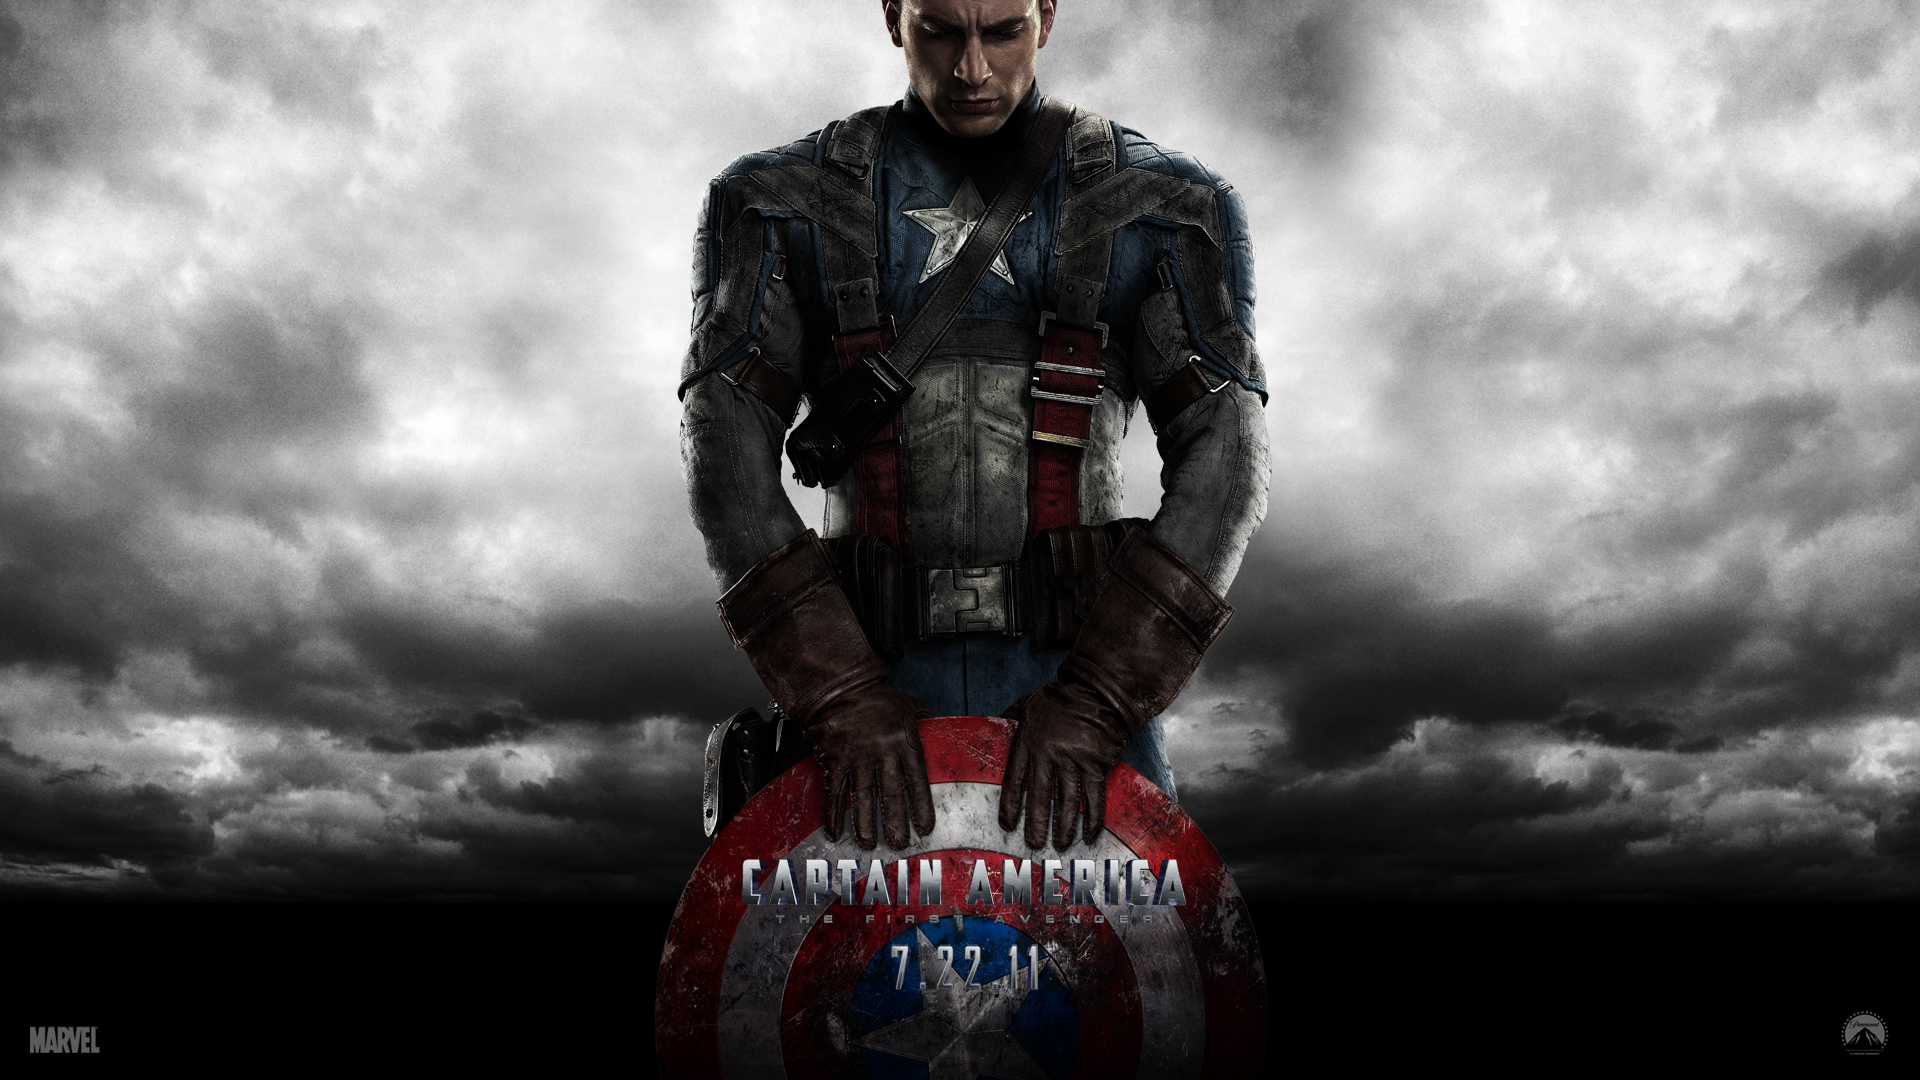 Hd wallpaper of captain america - Captain America The First Avenger Wallpaper Hd 1080p Celebrity And